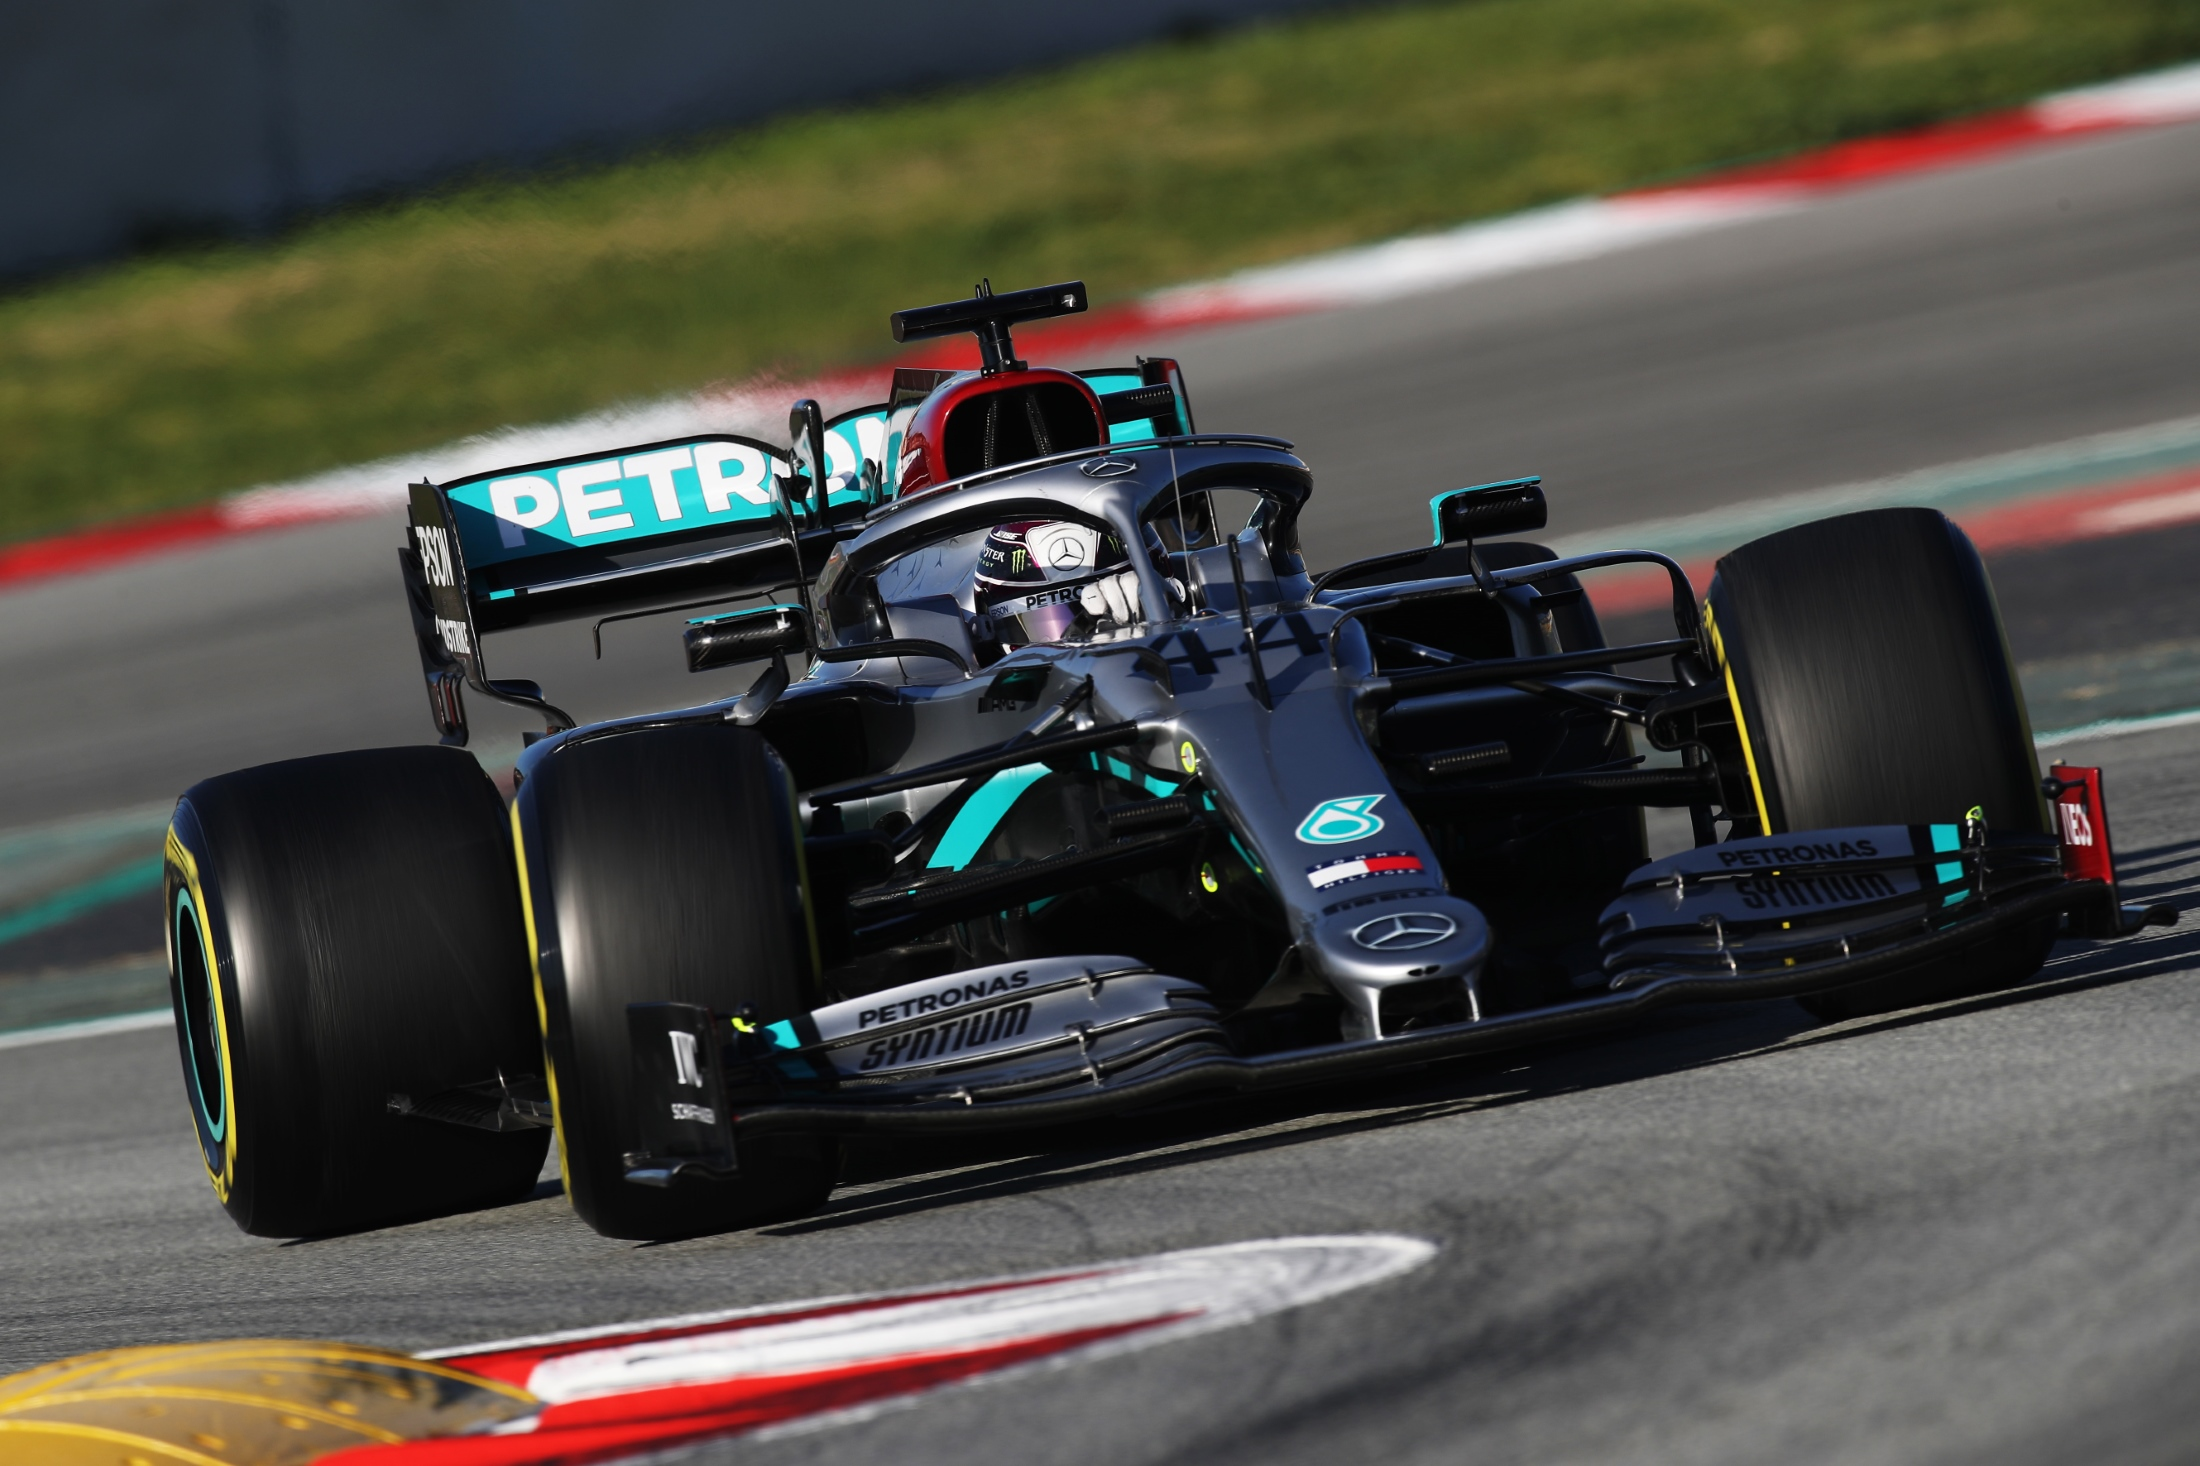 Mercedes F1 closes partnership with Bitcoin exchange